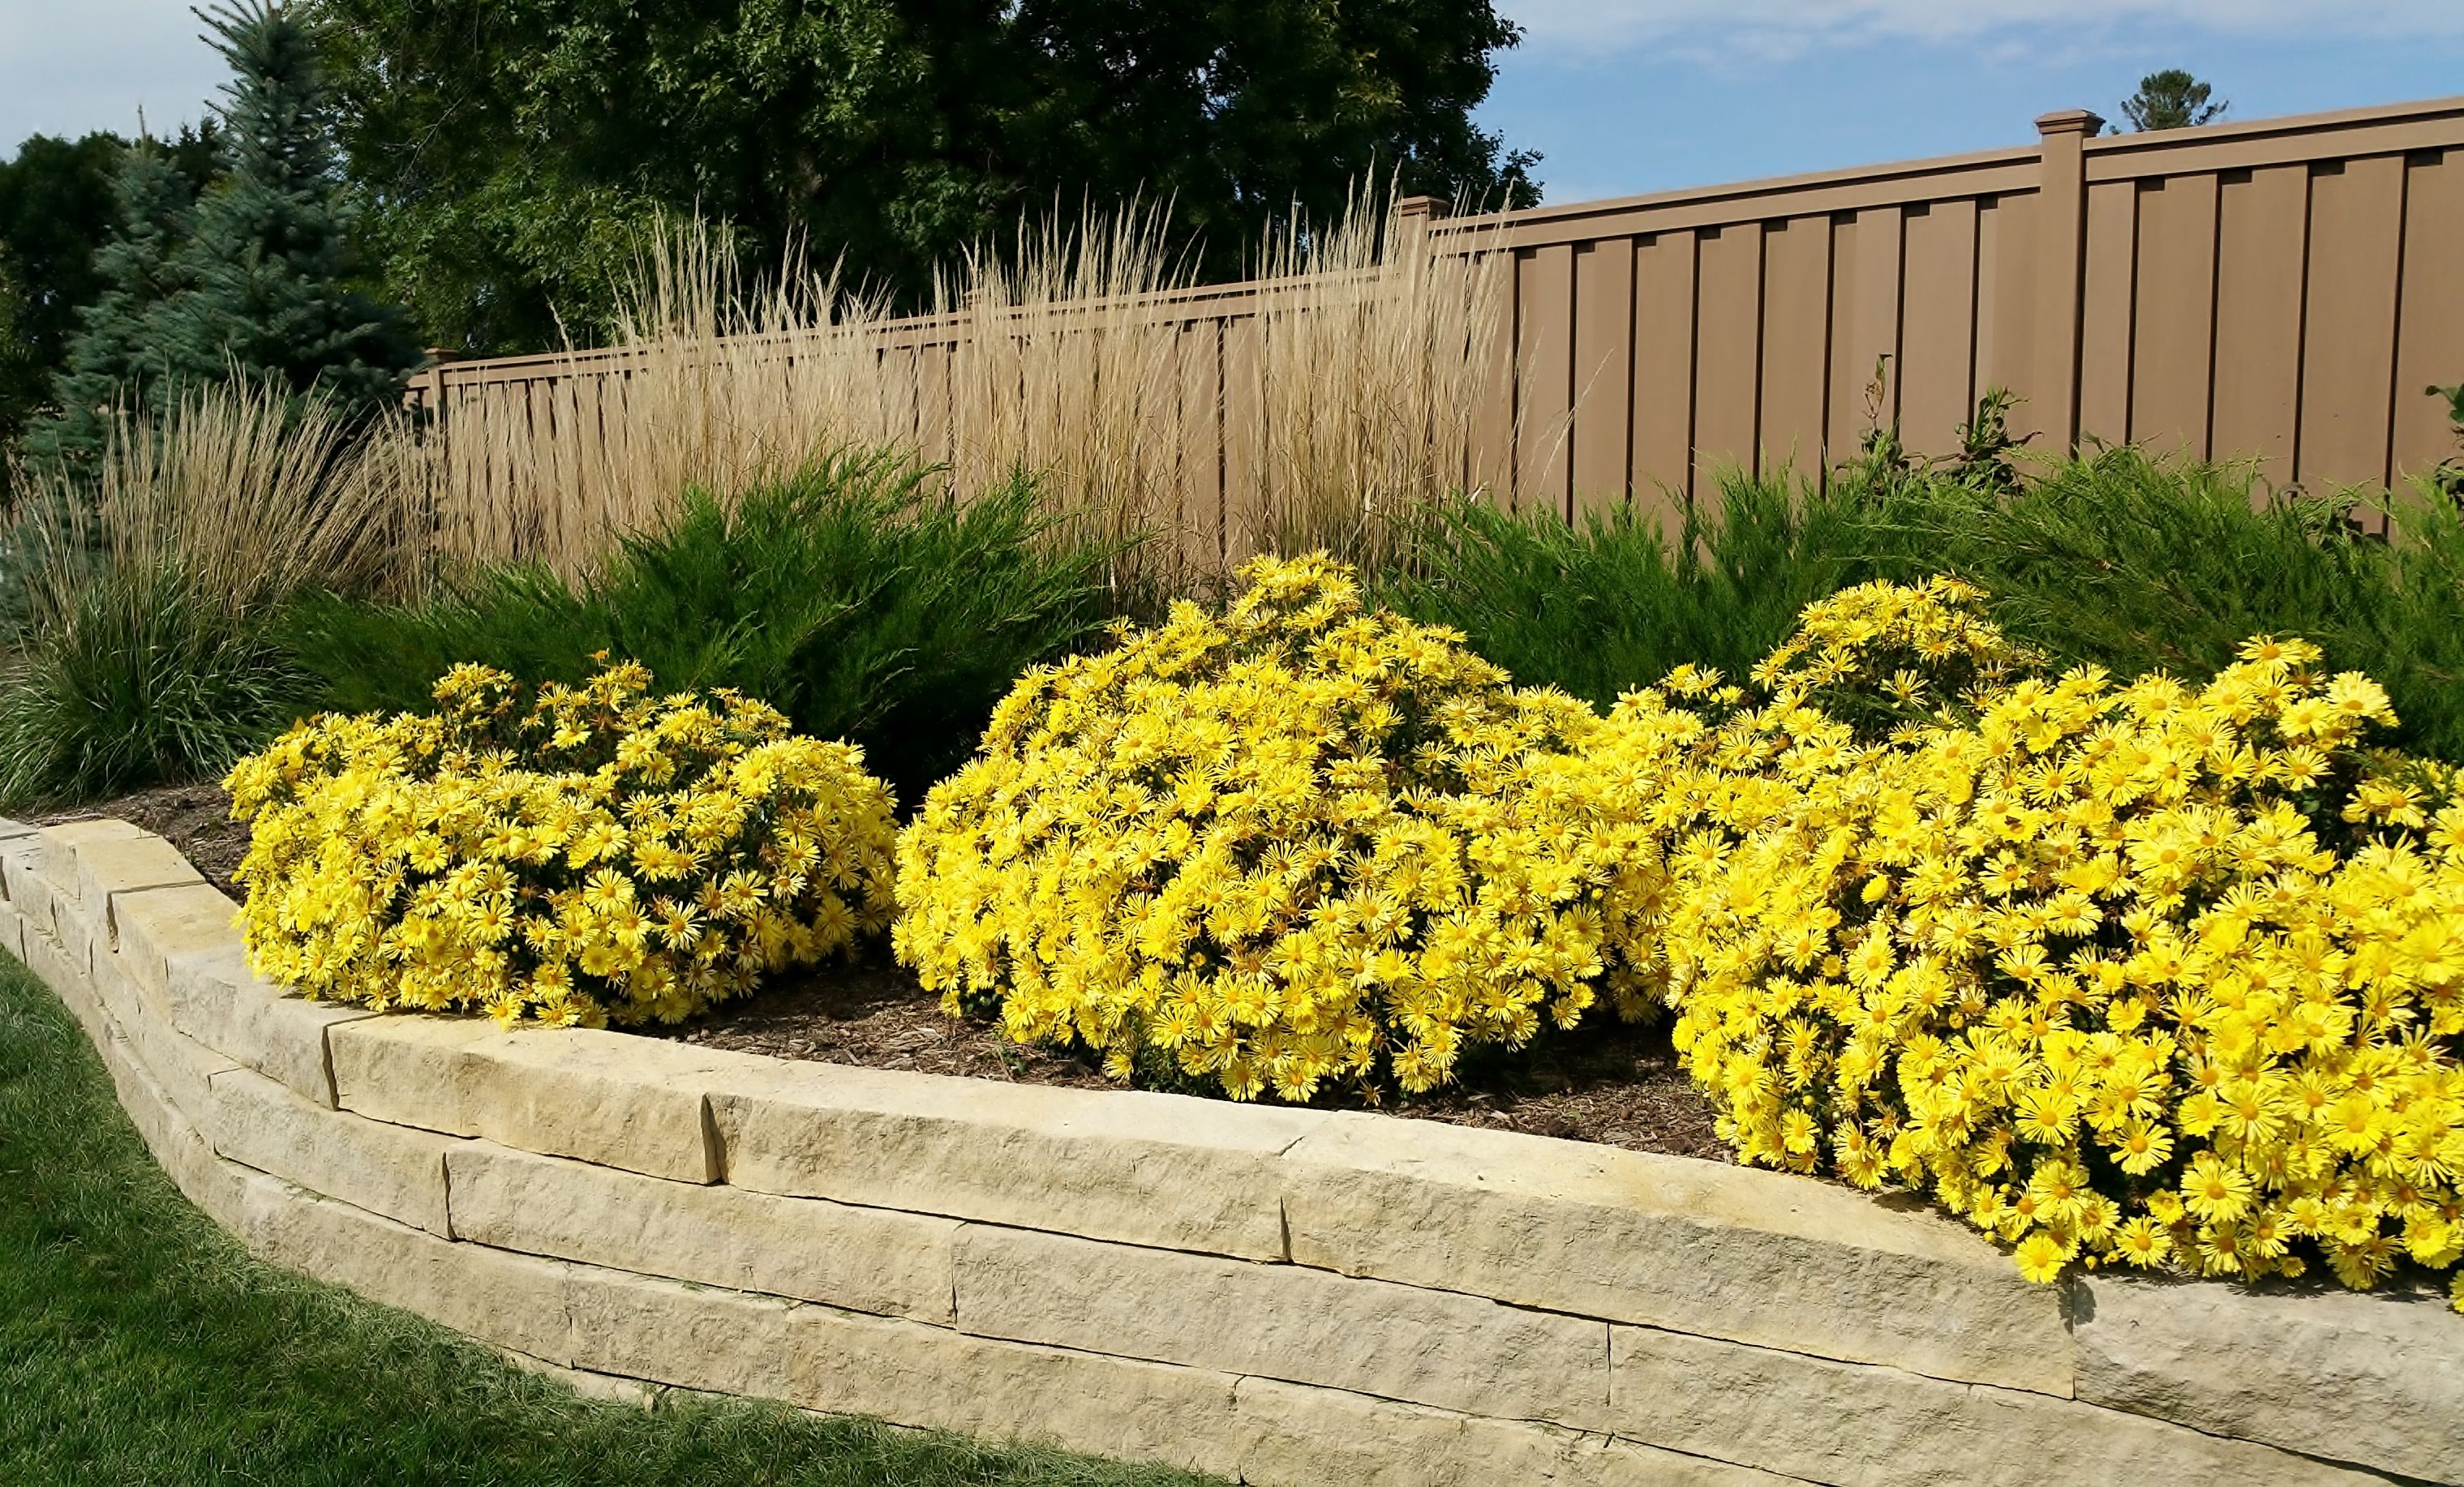 Pin by Stony Creek Landscapes, Inc. on Plantings and Garden Beds ...